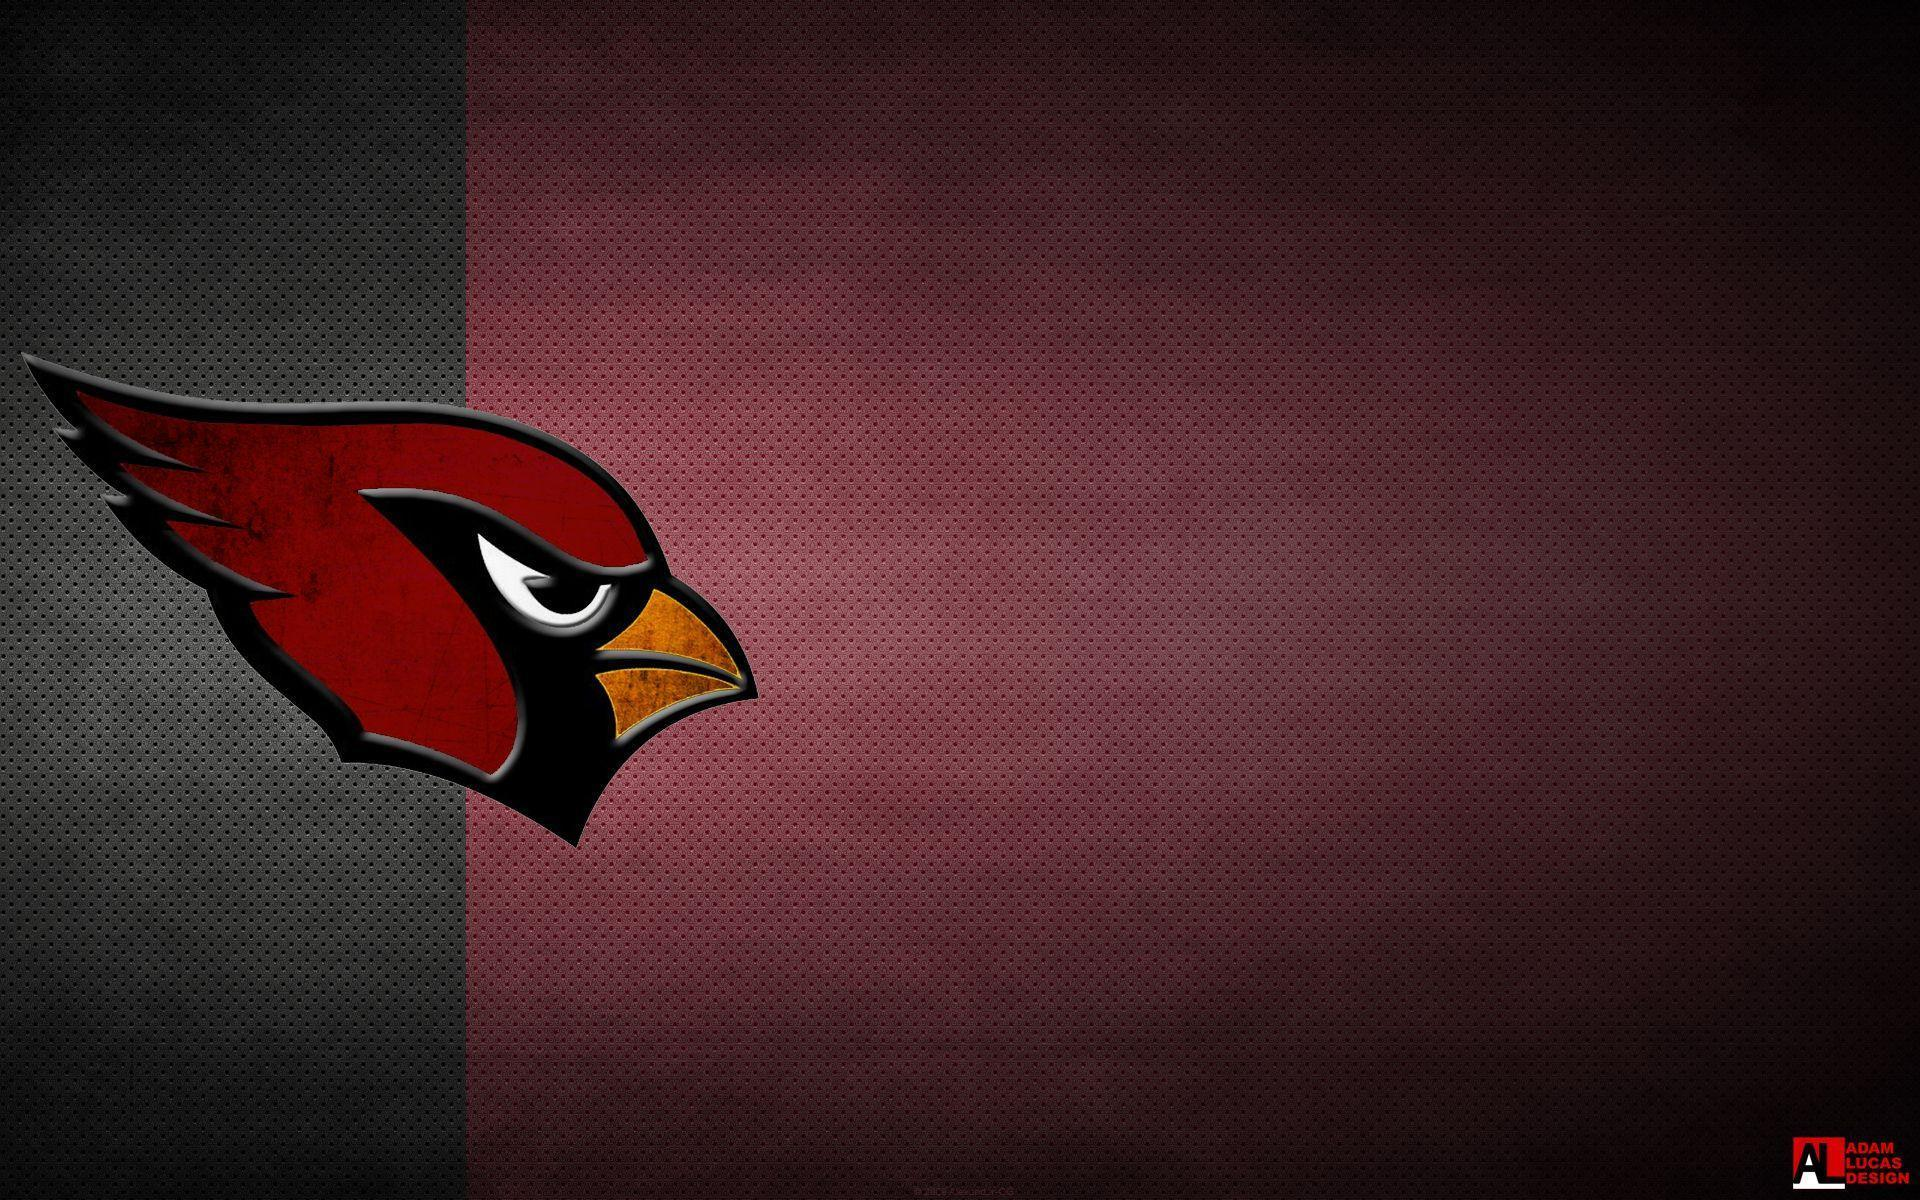 Arizona Cardinals Backgrounds | HD Wallpapers, Backgrounds, Images ...